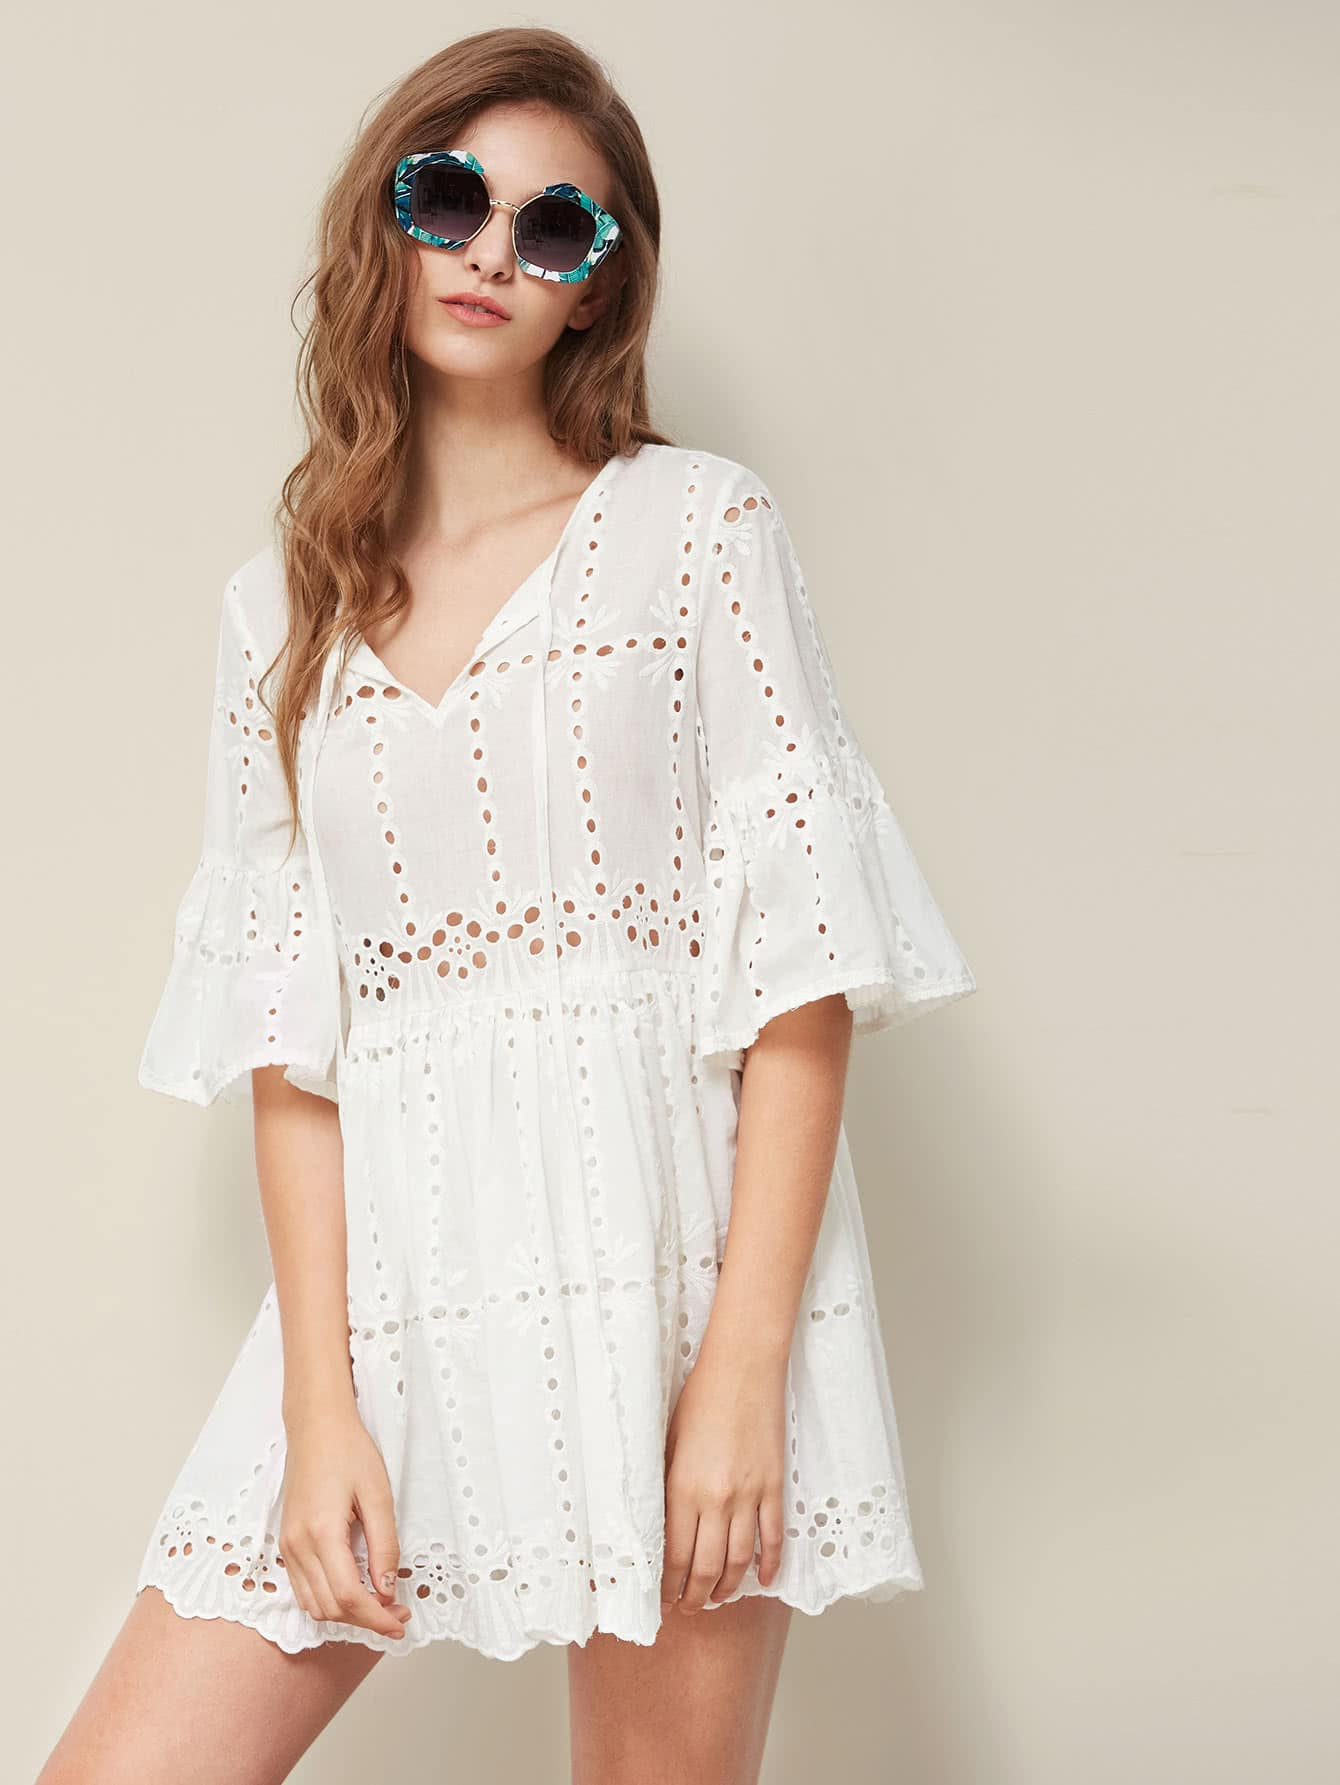 http://us.shein.com/Tie-Neck-Fluted-Sleeve-Eyelet-Embroidered-Smock-Dress-p-361503-cat-1727.html?aff_id=4021